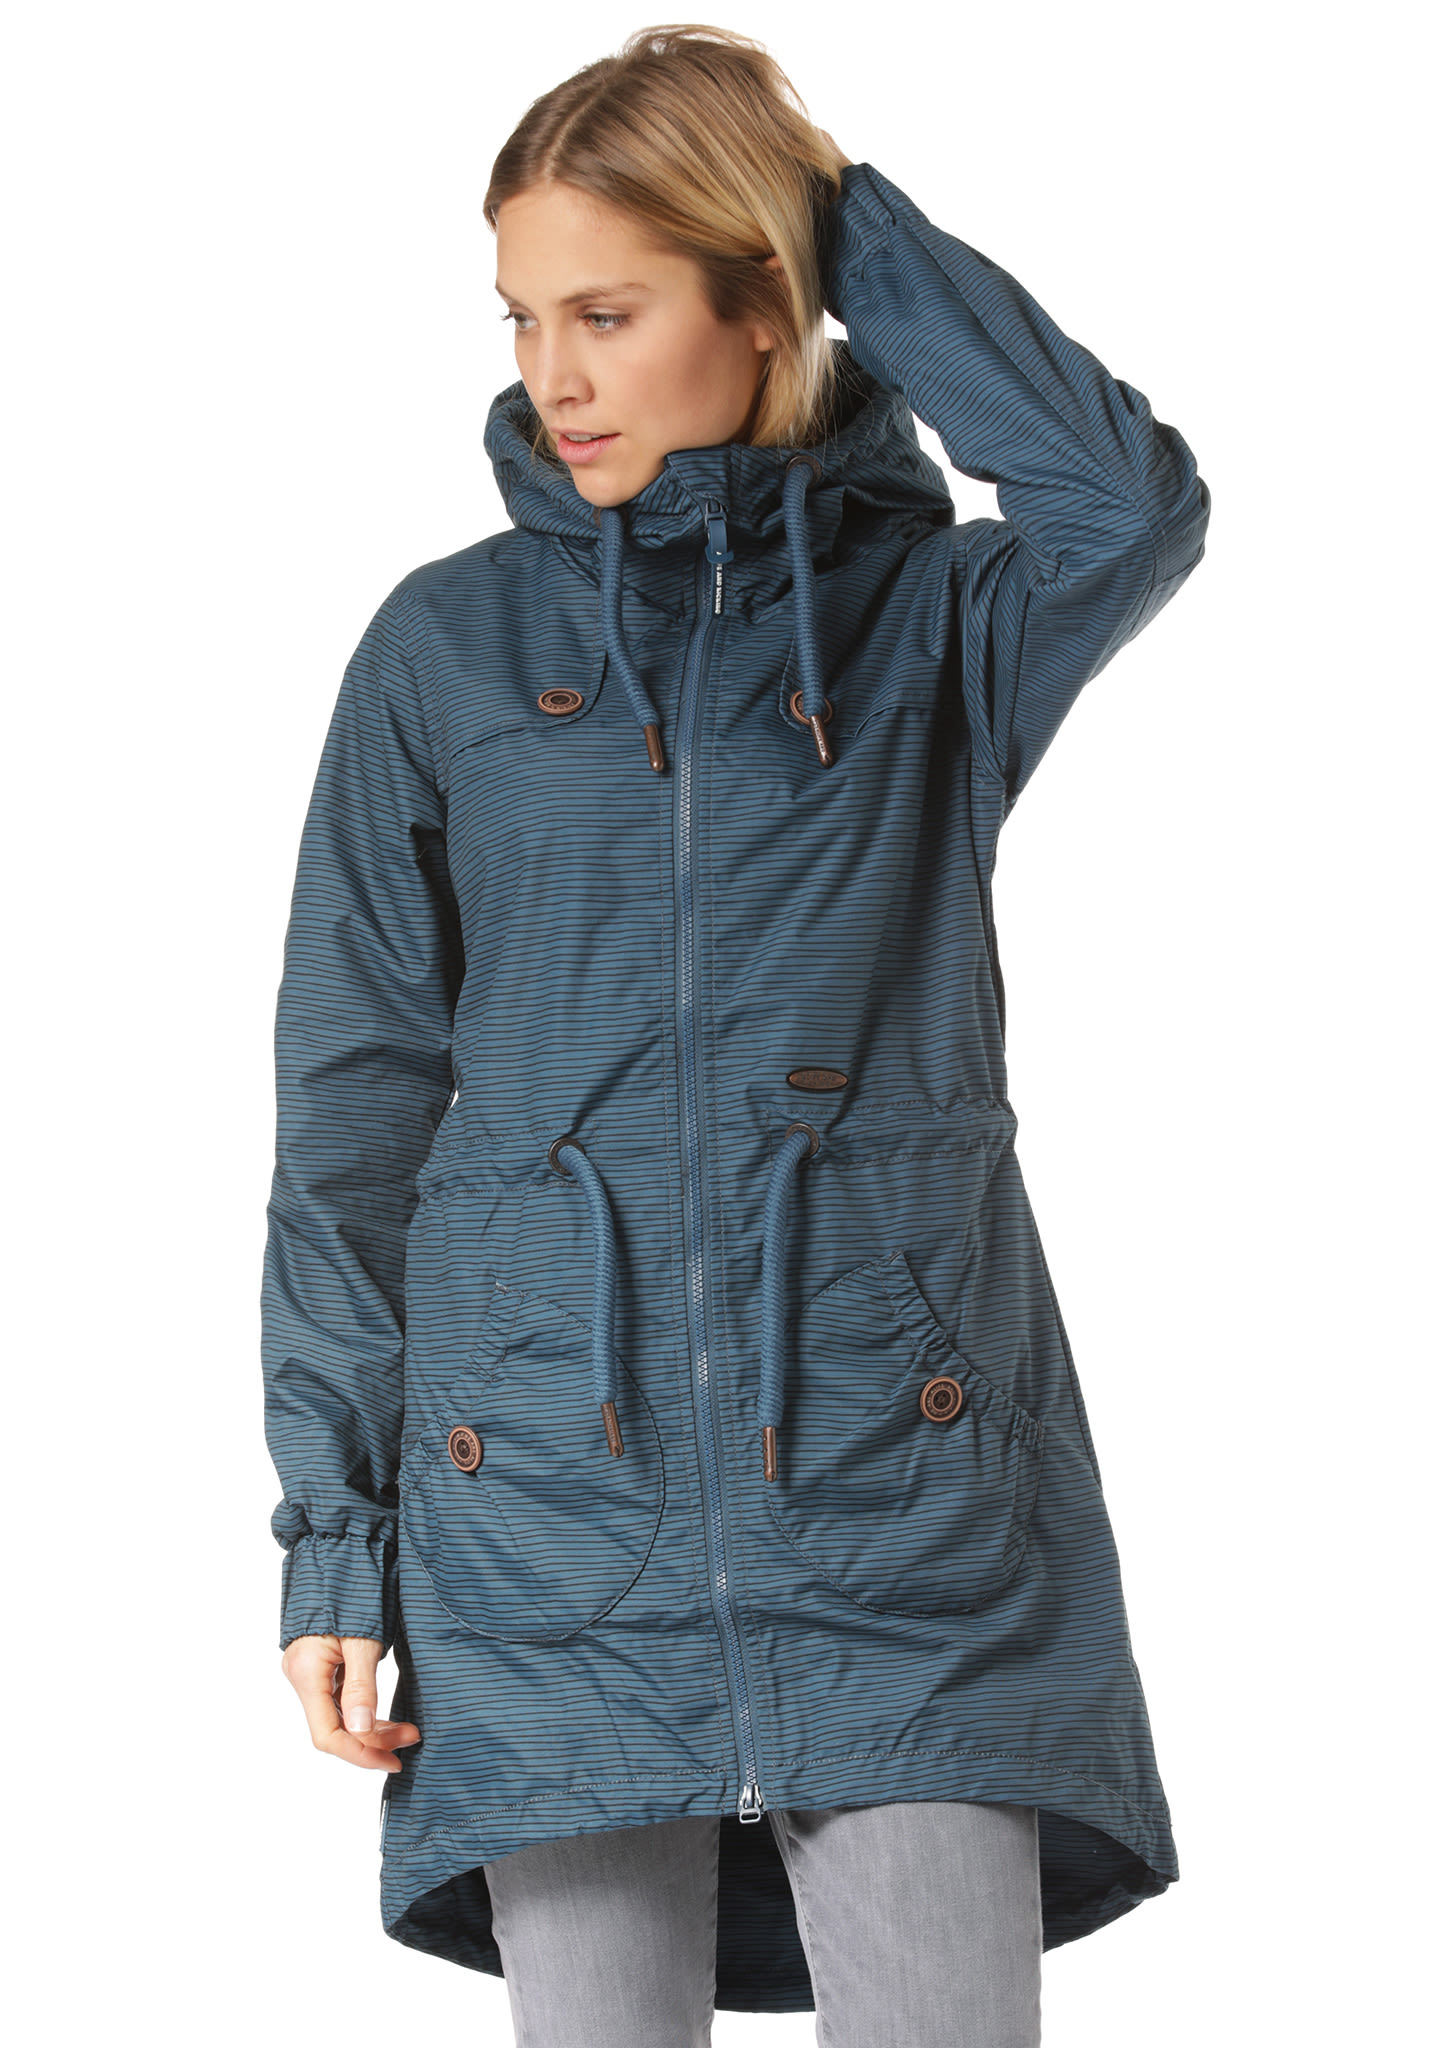 376192aa0231d ALIFE AND KICKIN Charlotte As - Coat for Women - Blue - Planet Sports